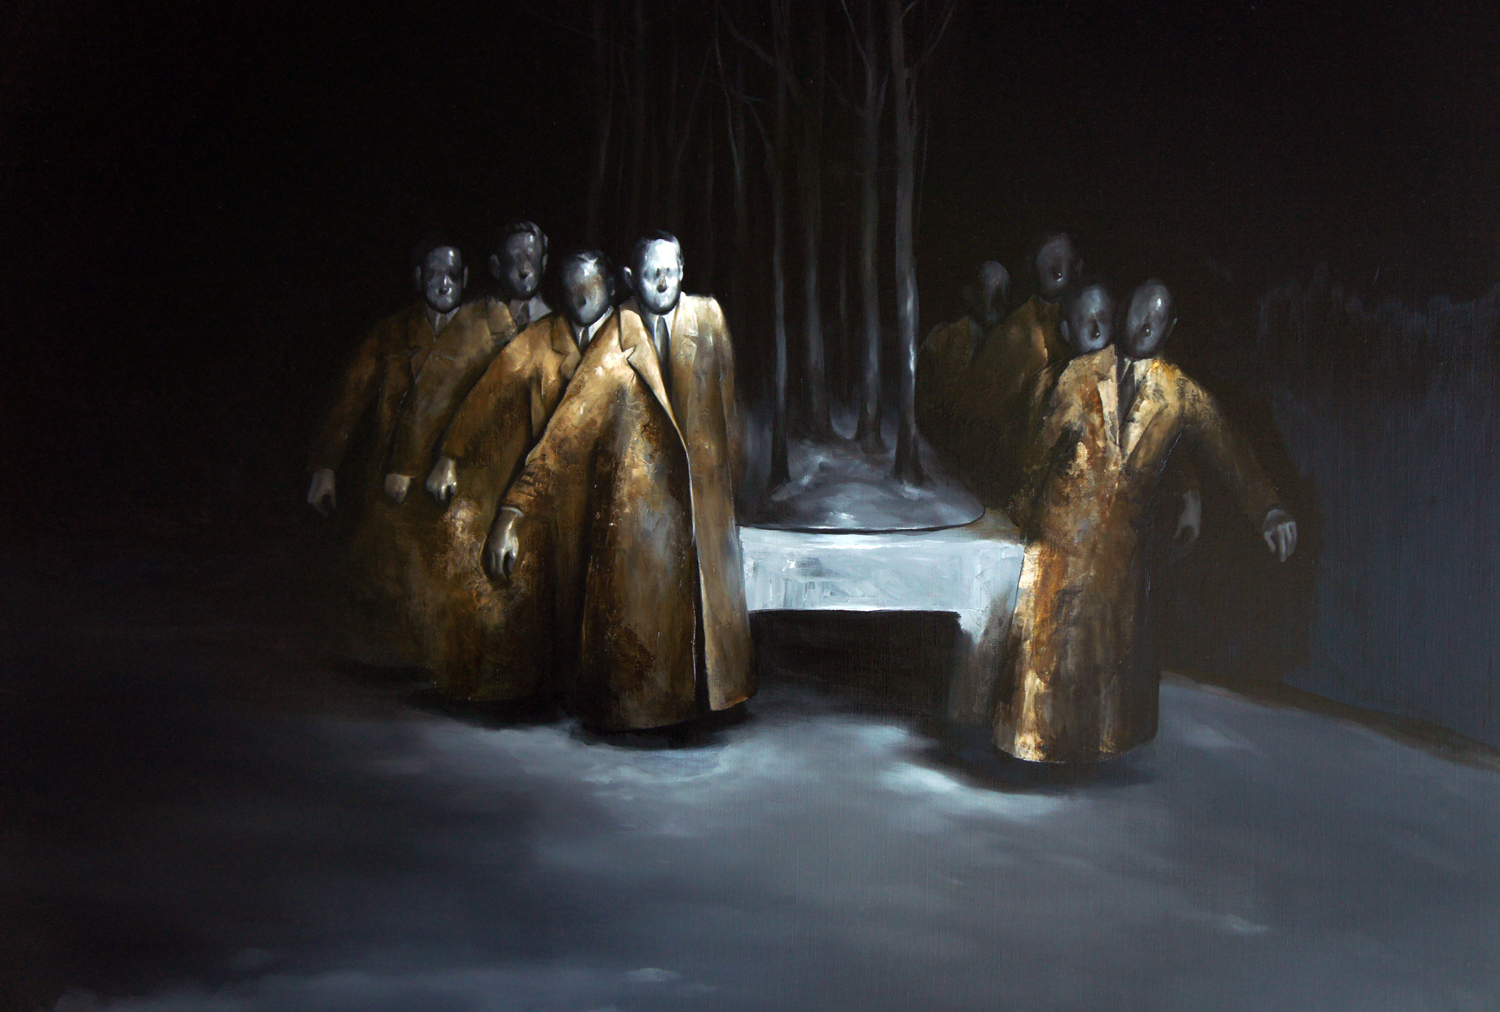 Radu Belcin, Golden jury, 2012, Oil on canvas, 80 x 100 cm